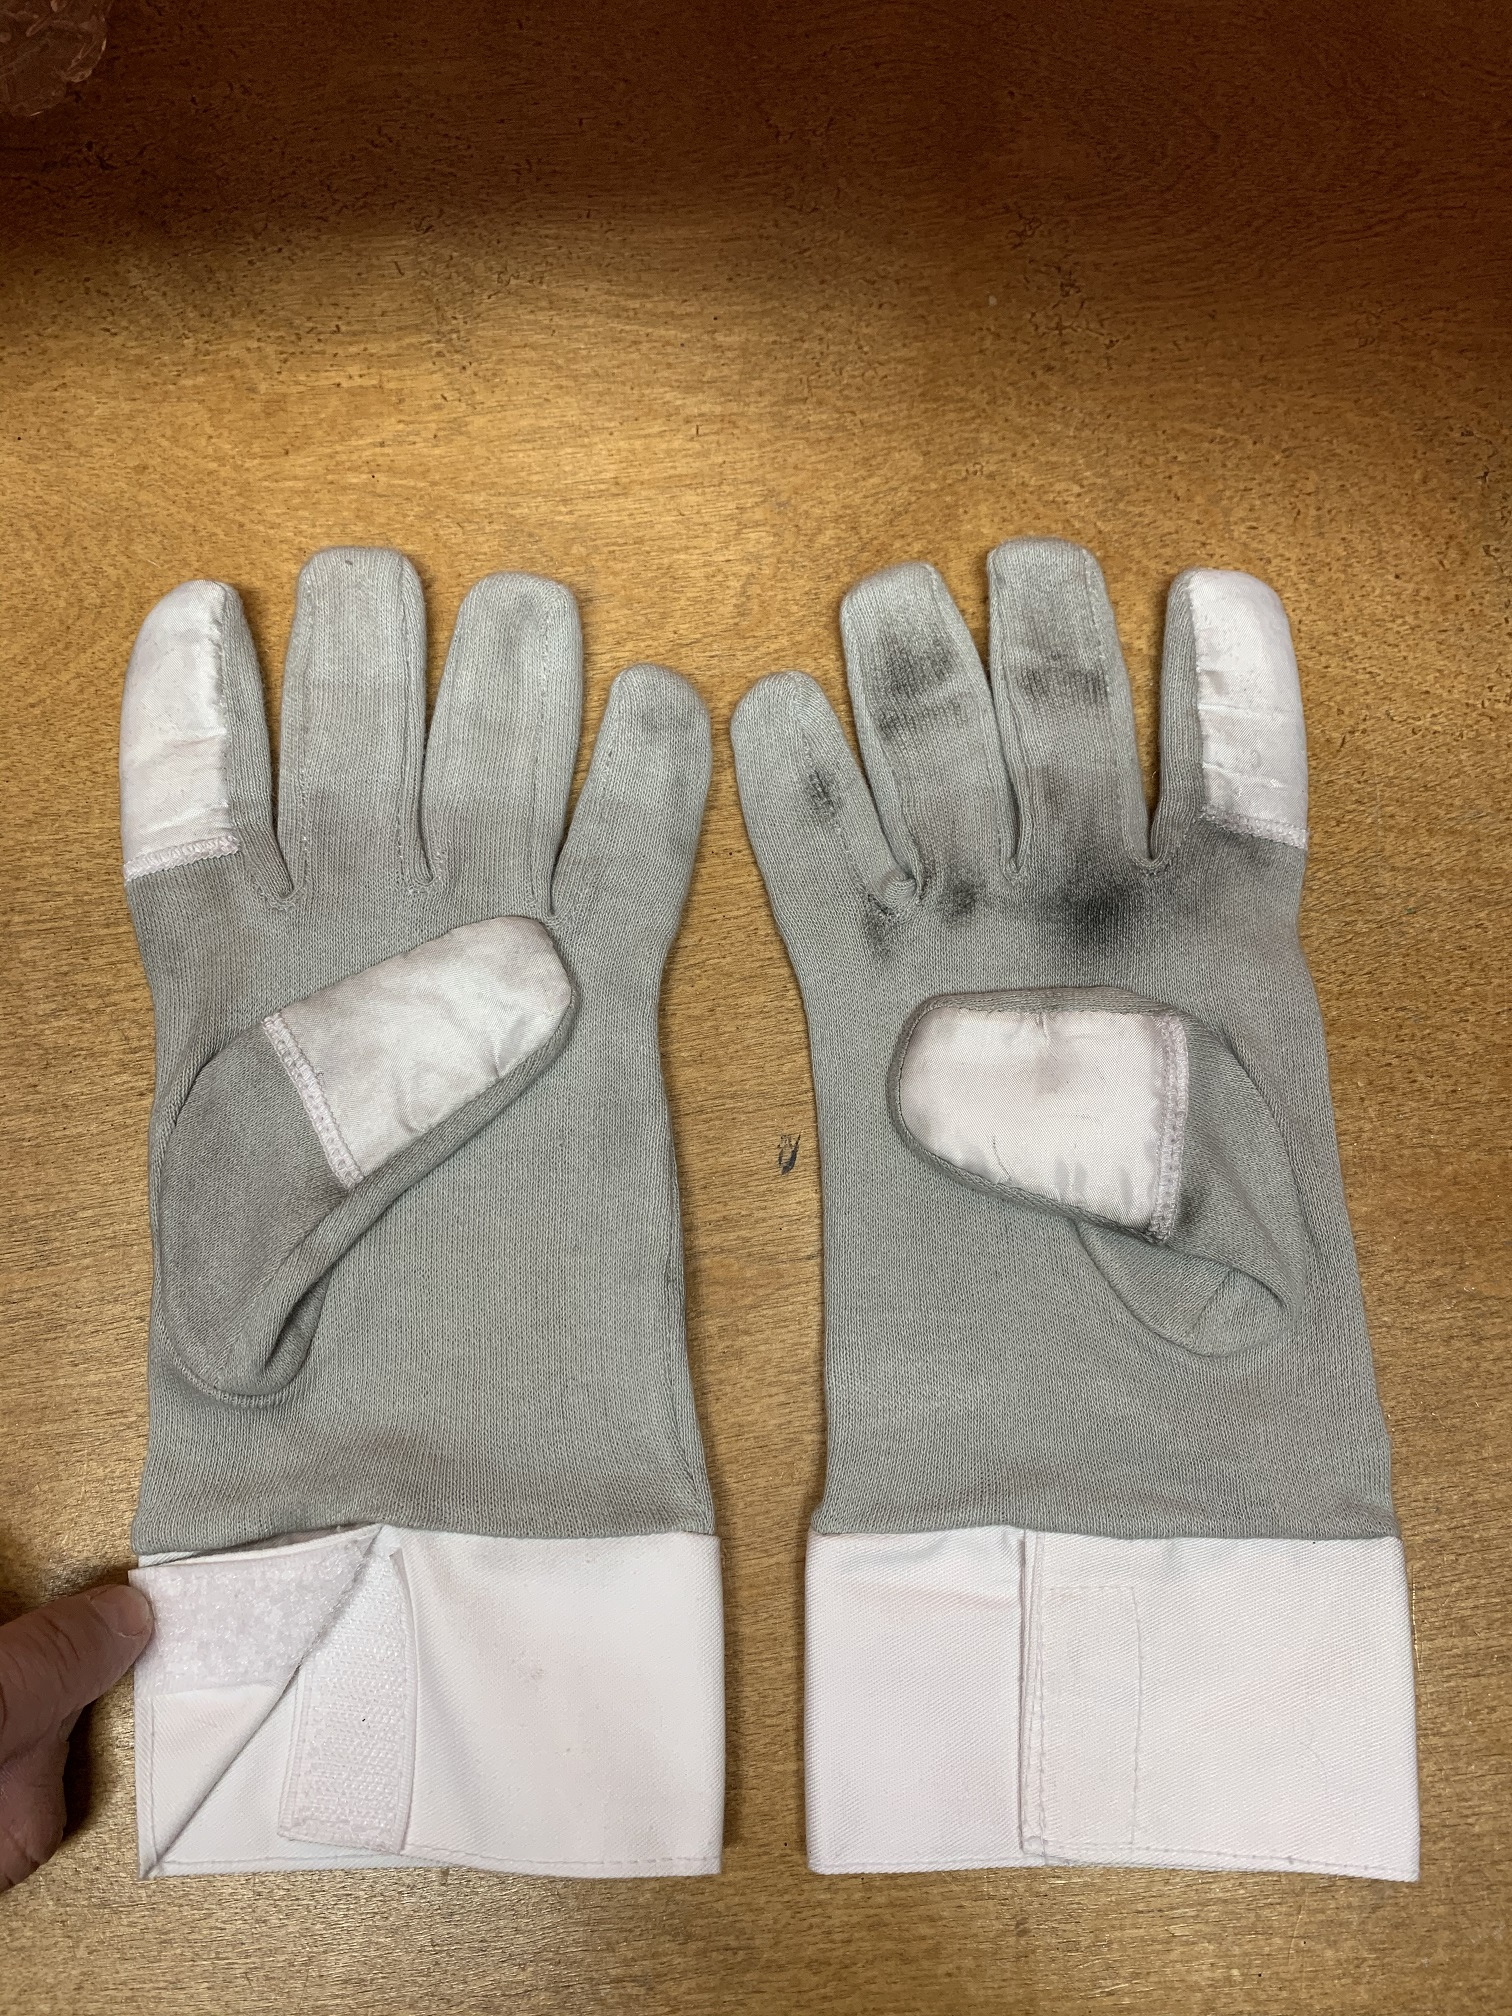 MoW ROTJ Gloves.jpg